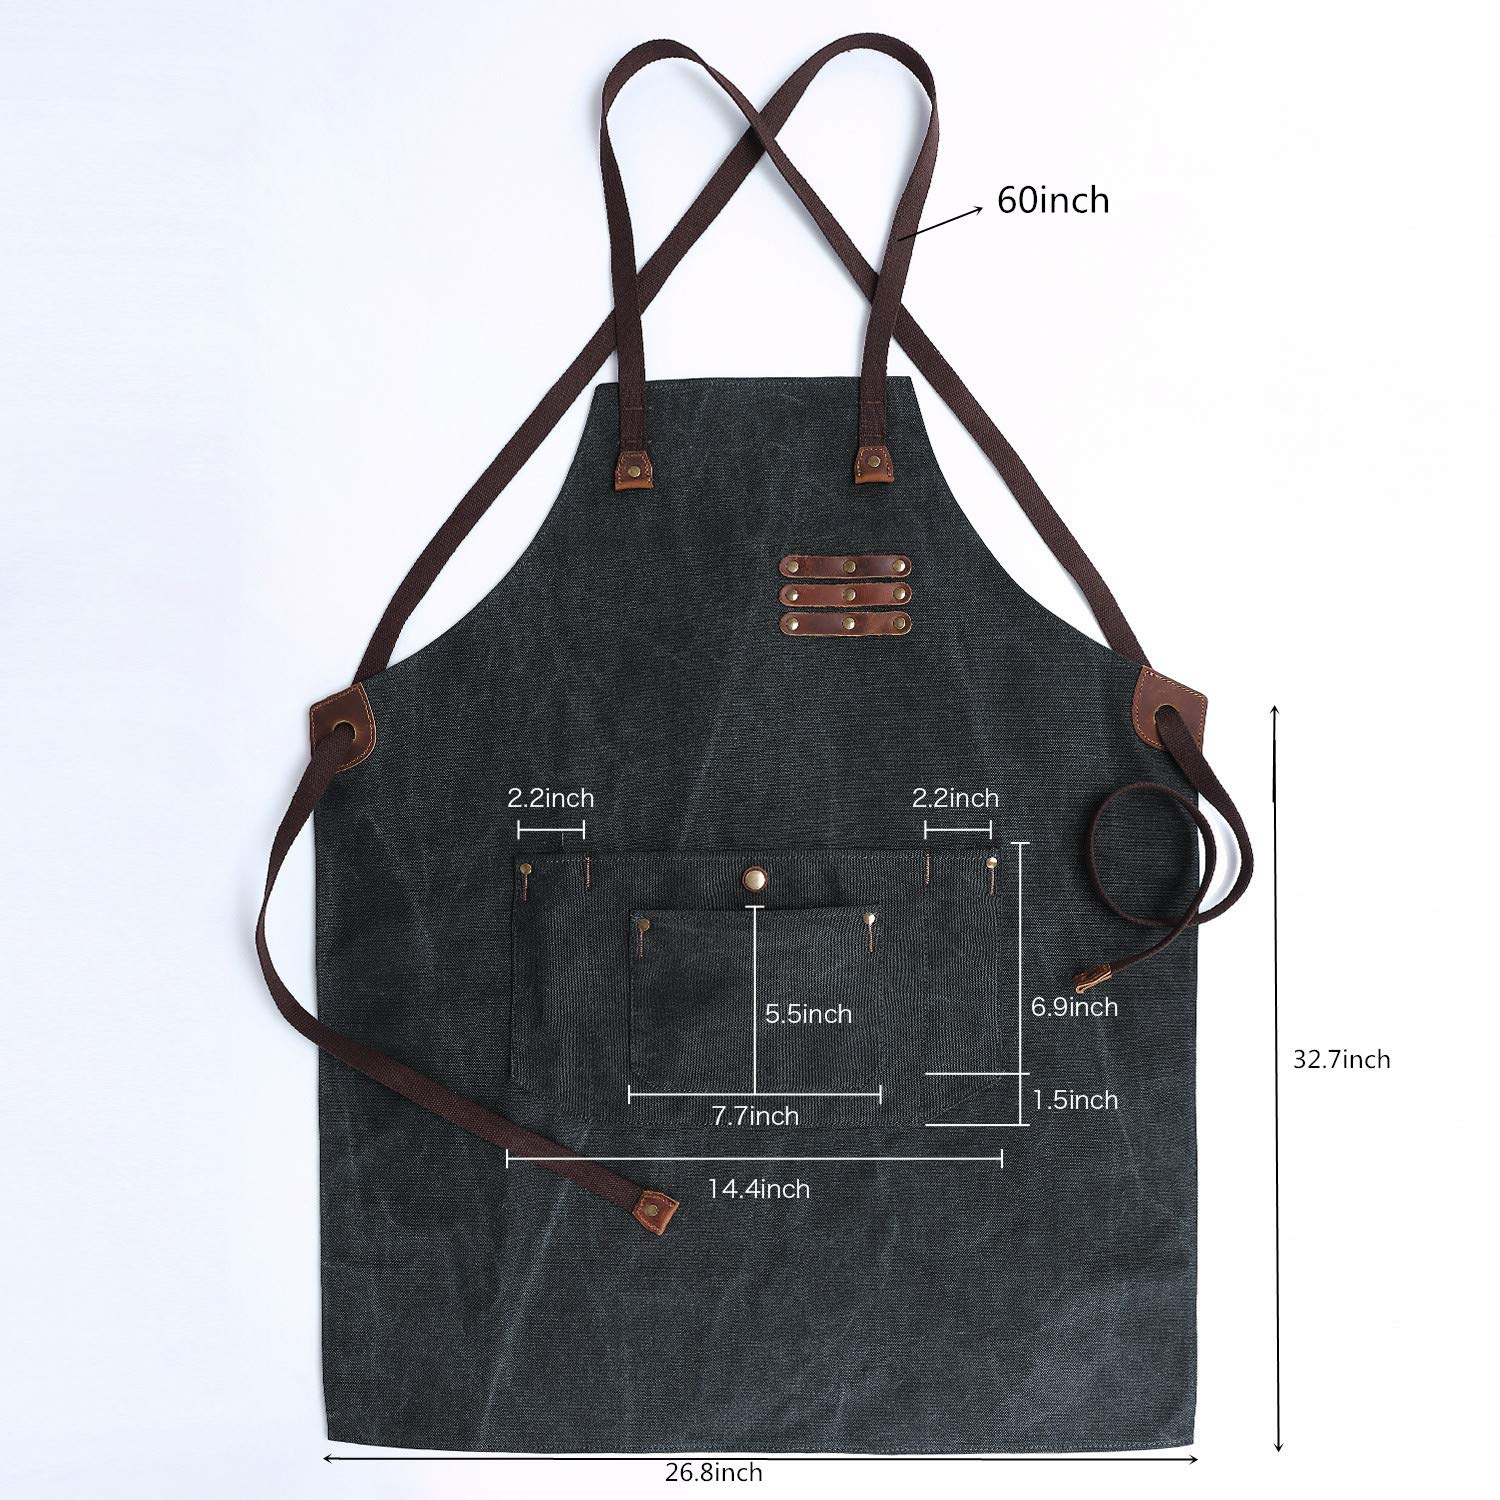 G-FAVOR Work Apron Canvas Welding Tool Woodworking Apron Durable Heavy Duty with Tool Pockets for Men Women Cross Back Straps Adjustable S to XXL(Black) by G-FAVOR (Image #6)